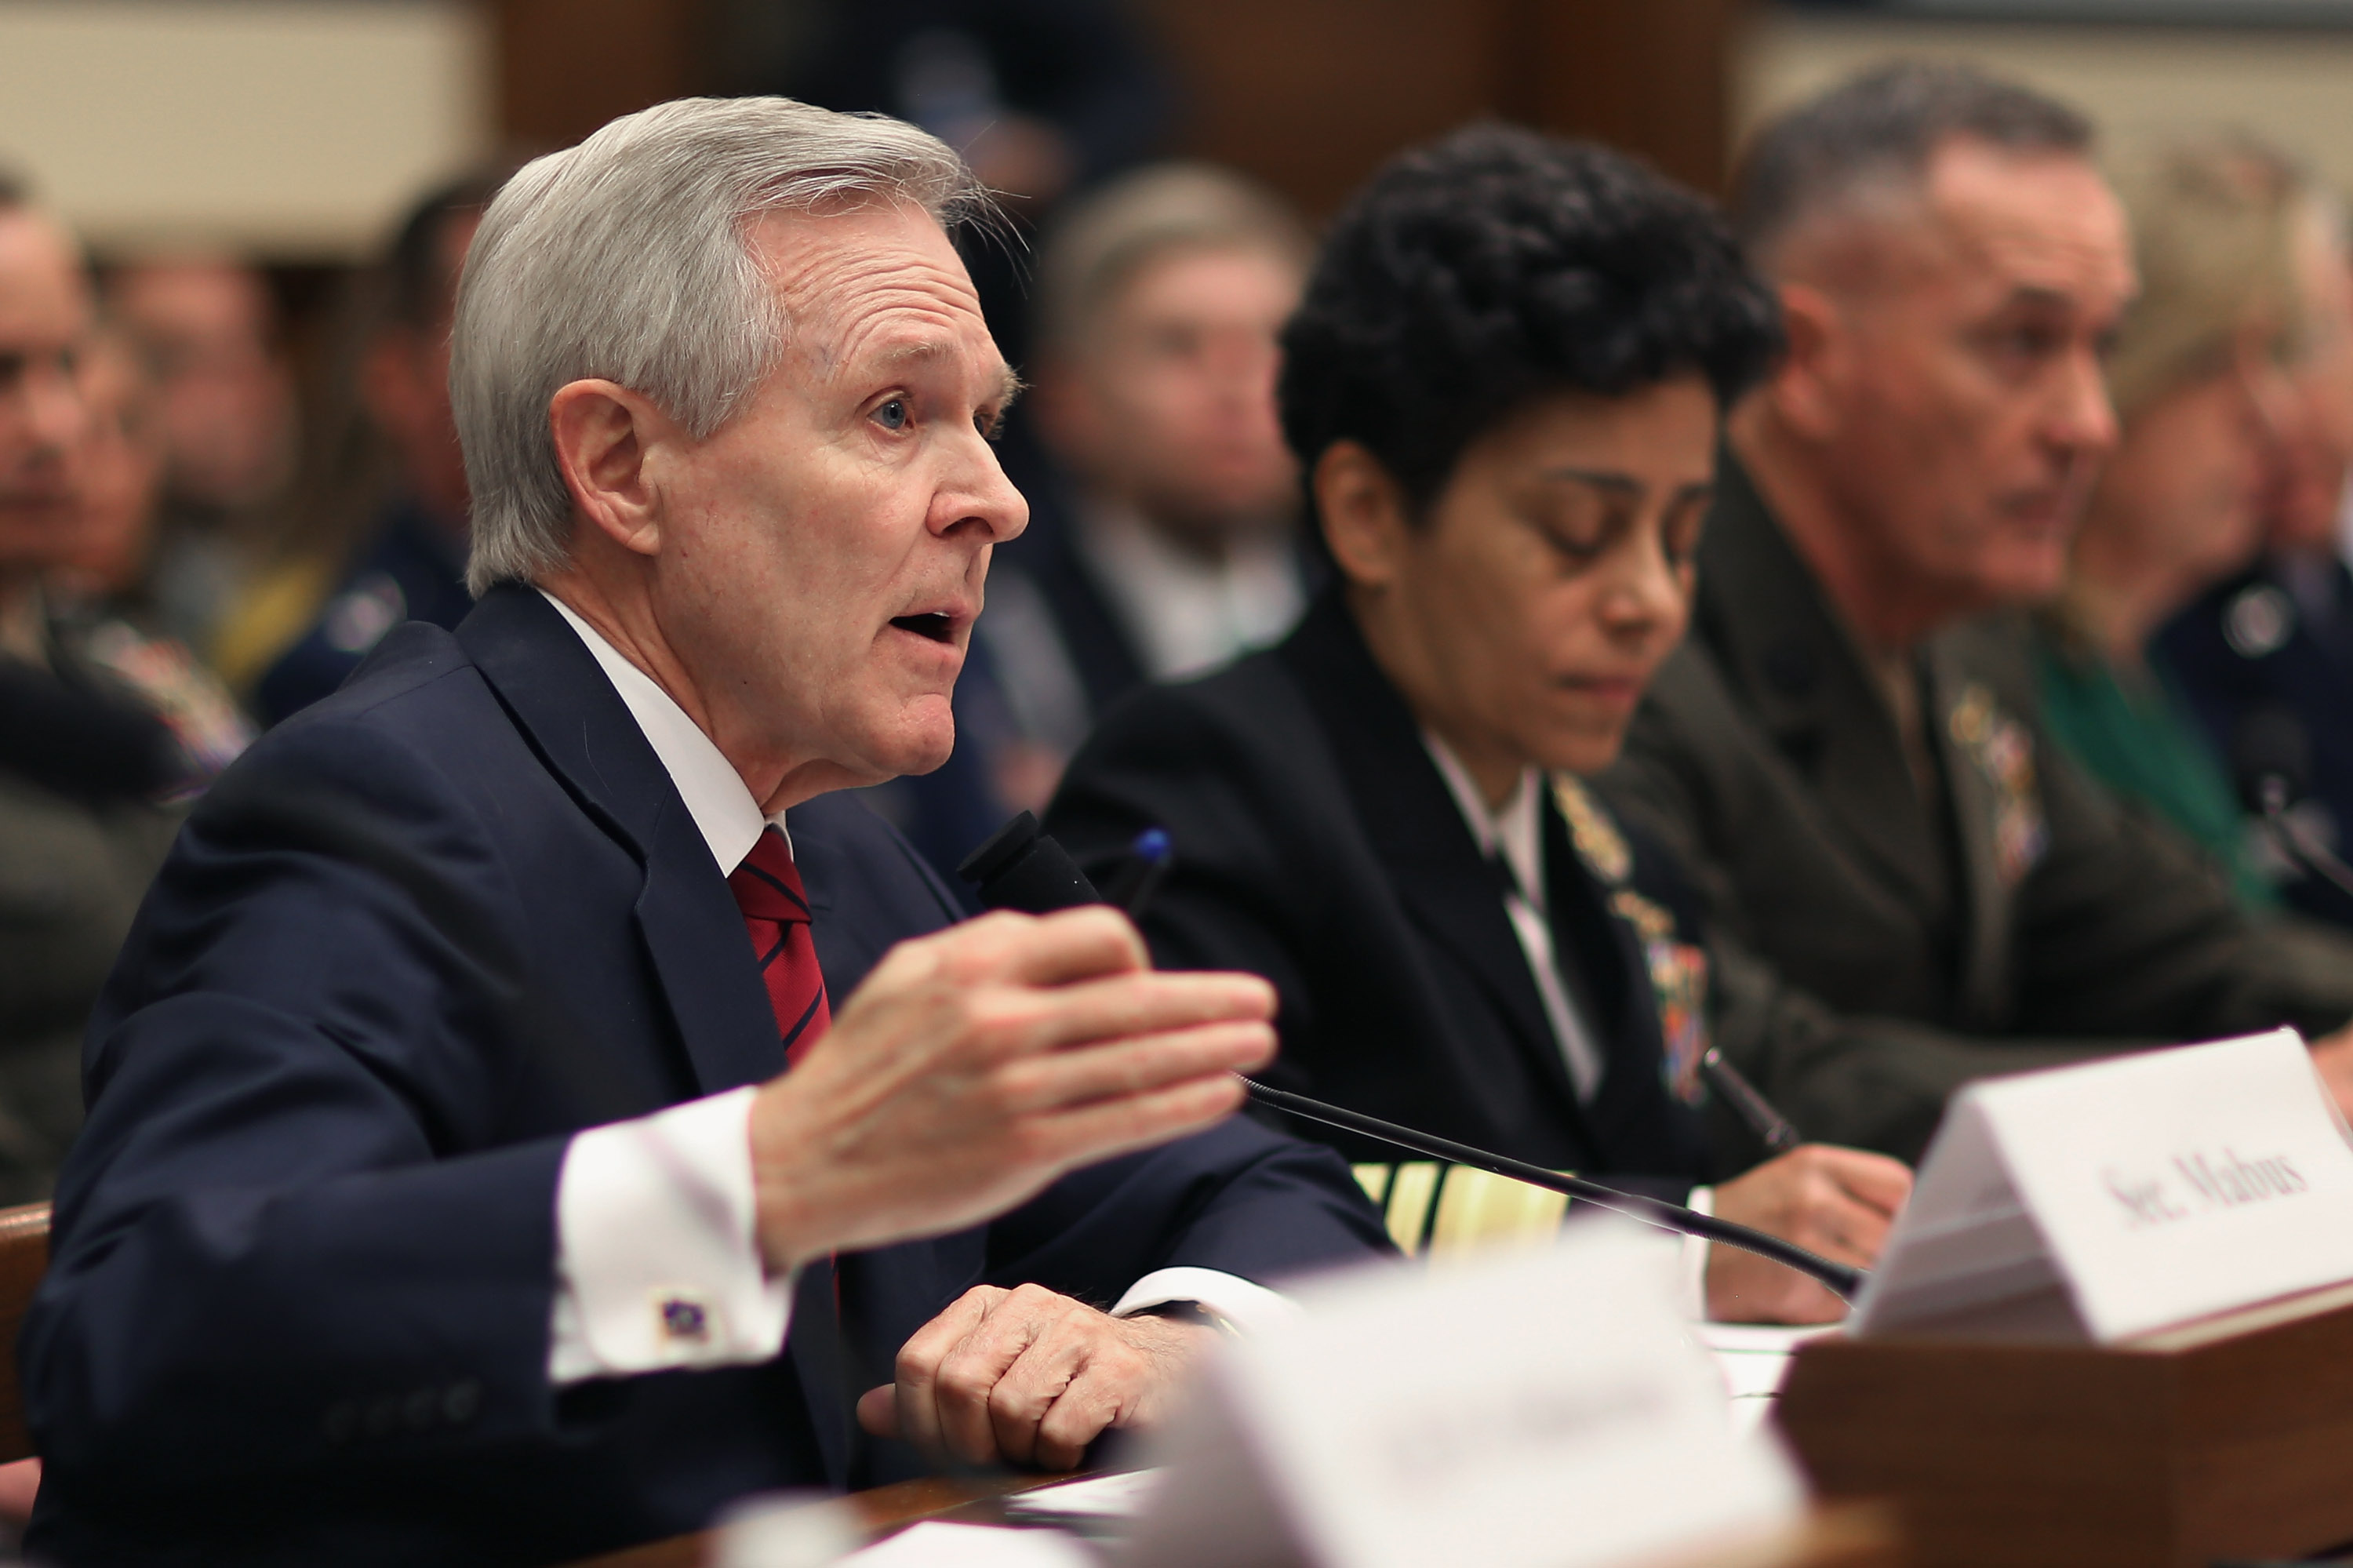 Secretary of the Navy Ray Mabus, Vice Chief of Naval Operations Adm. Michelle Howard, Commandant of the Marine Corps Gen. Joseph Dunford testify before the House Armed Services Committee about the FY2016 National Defense Authorization Budget Request in the Rayburn House Office Building on Capitol Hill on March 17, 2015.